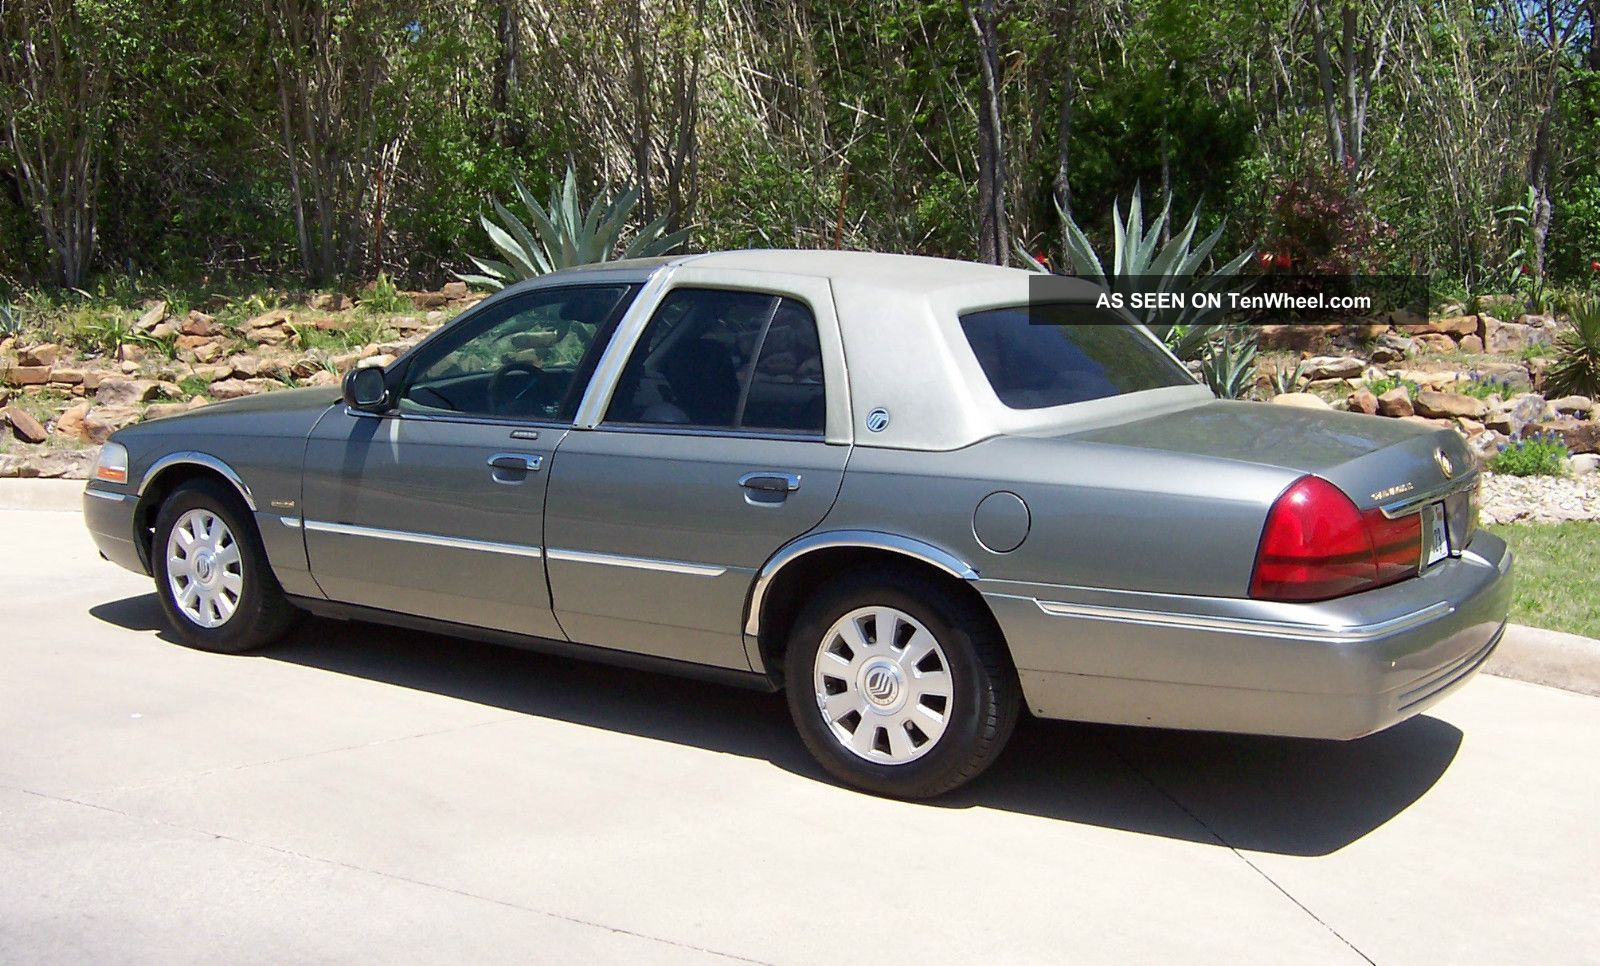 2003 mercury grand marquis ls runs and drives perfect great luxury car. Black Bedroom Furniture Sets. Home Design Ideas